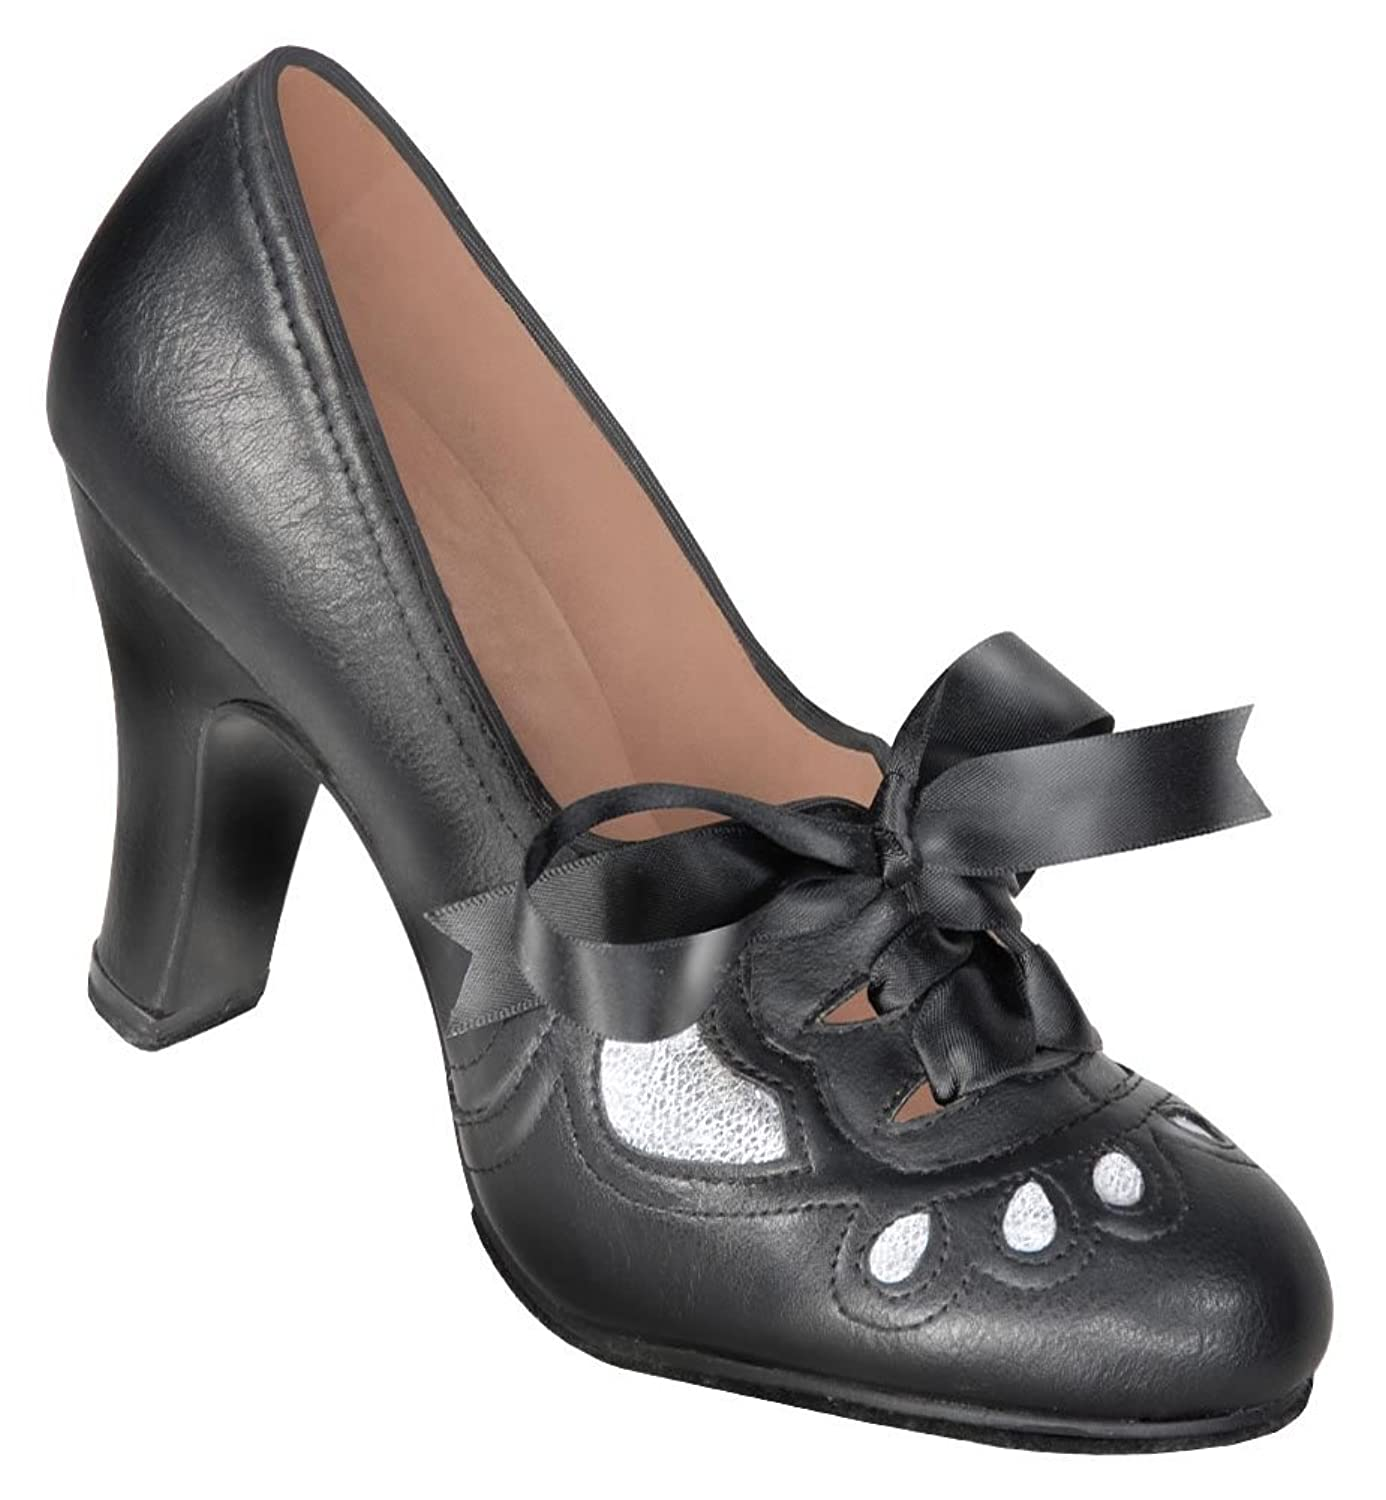 Swing Dance Shoes- Vintage, Lindy Hop, Tap, Ballroom Aris Allen Womens 1930s Black and Silver Lace-up Heeled Oxford Shoes $48.95 AT vintagedancer.com